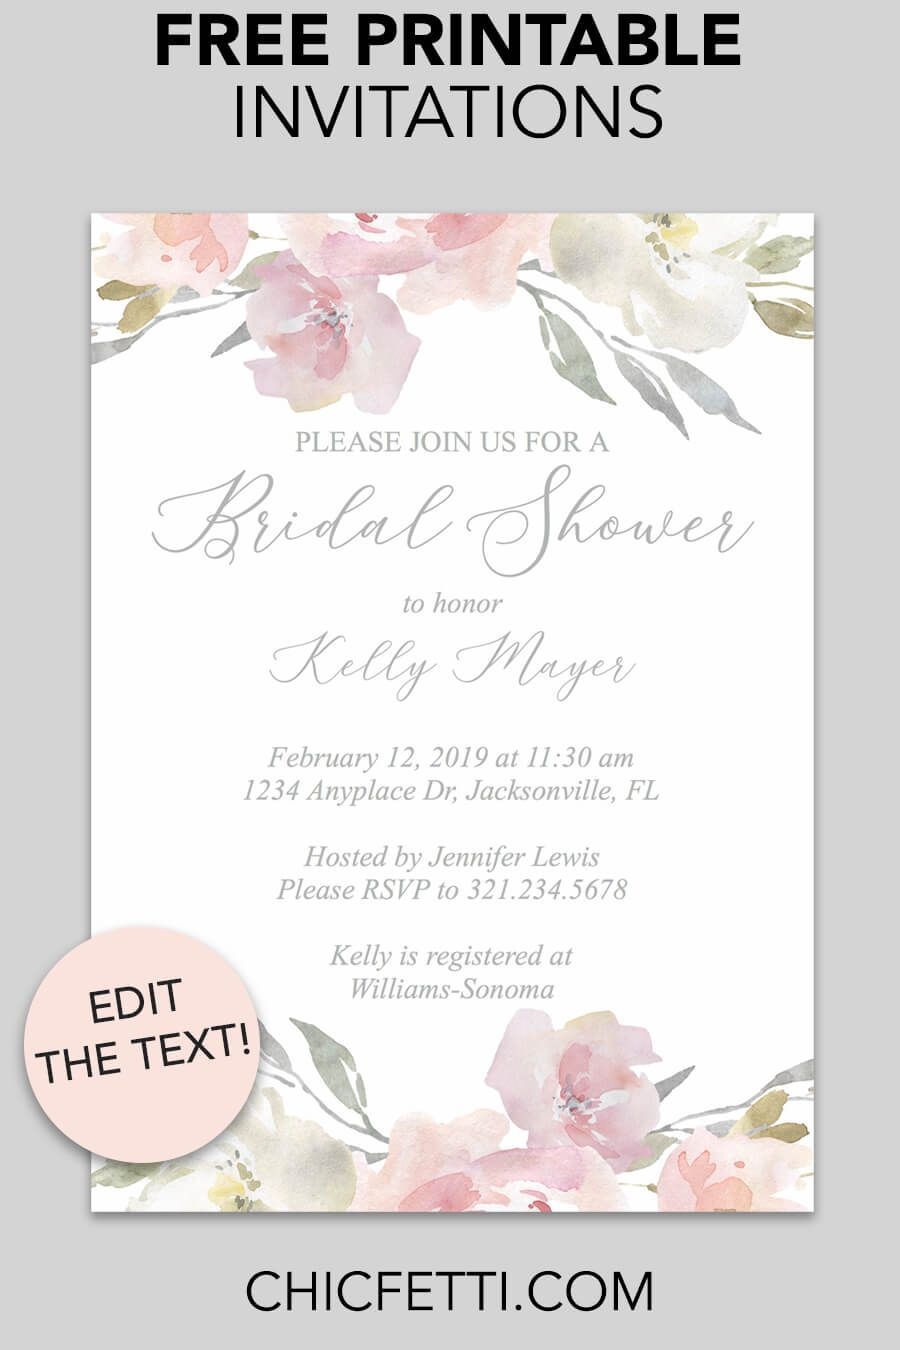 000 Magnificent Free Bridal Shower Invite Template Picture  Templates Invitation To Print Online Wedding For Microsoft WordFull